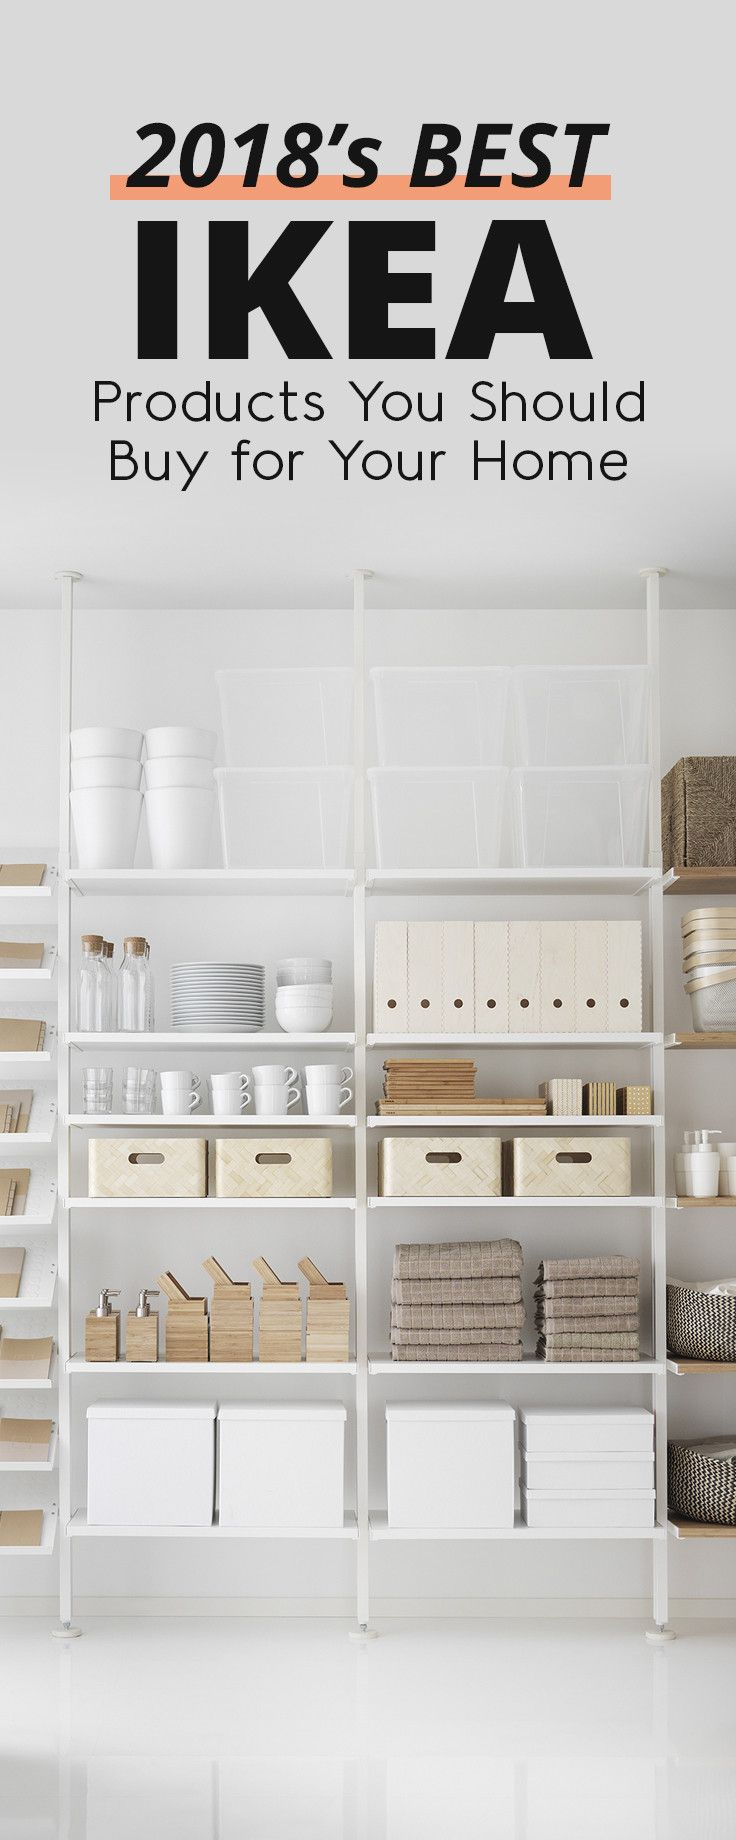 Ikea Armadio A Muro.The Best Ikea Products That You Will Want For Your Home Upgrade